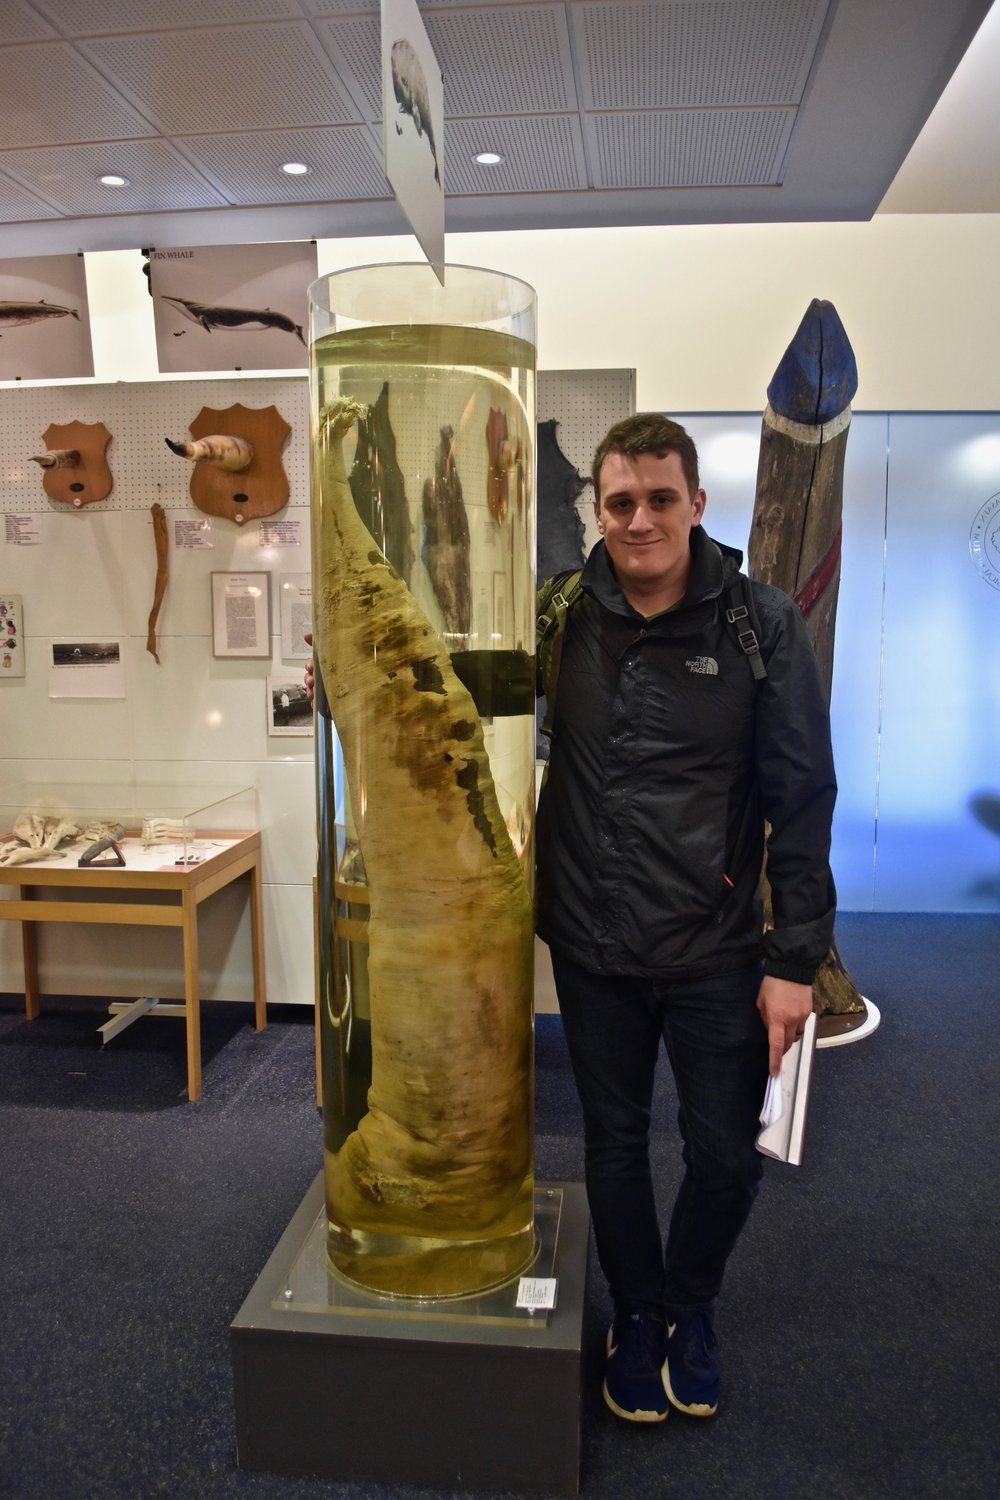 The Icelandic Phallological Museum in Reykjavik, Iceland